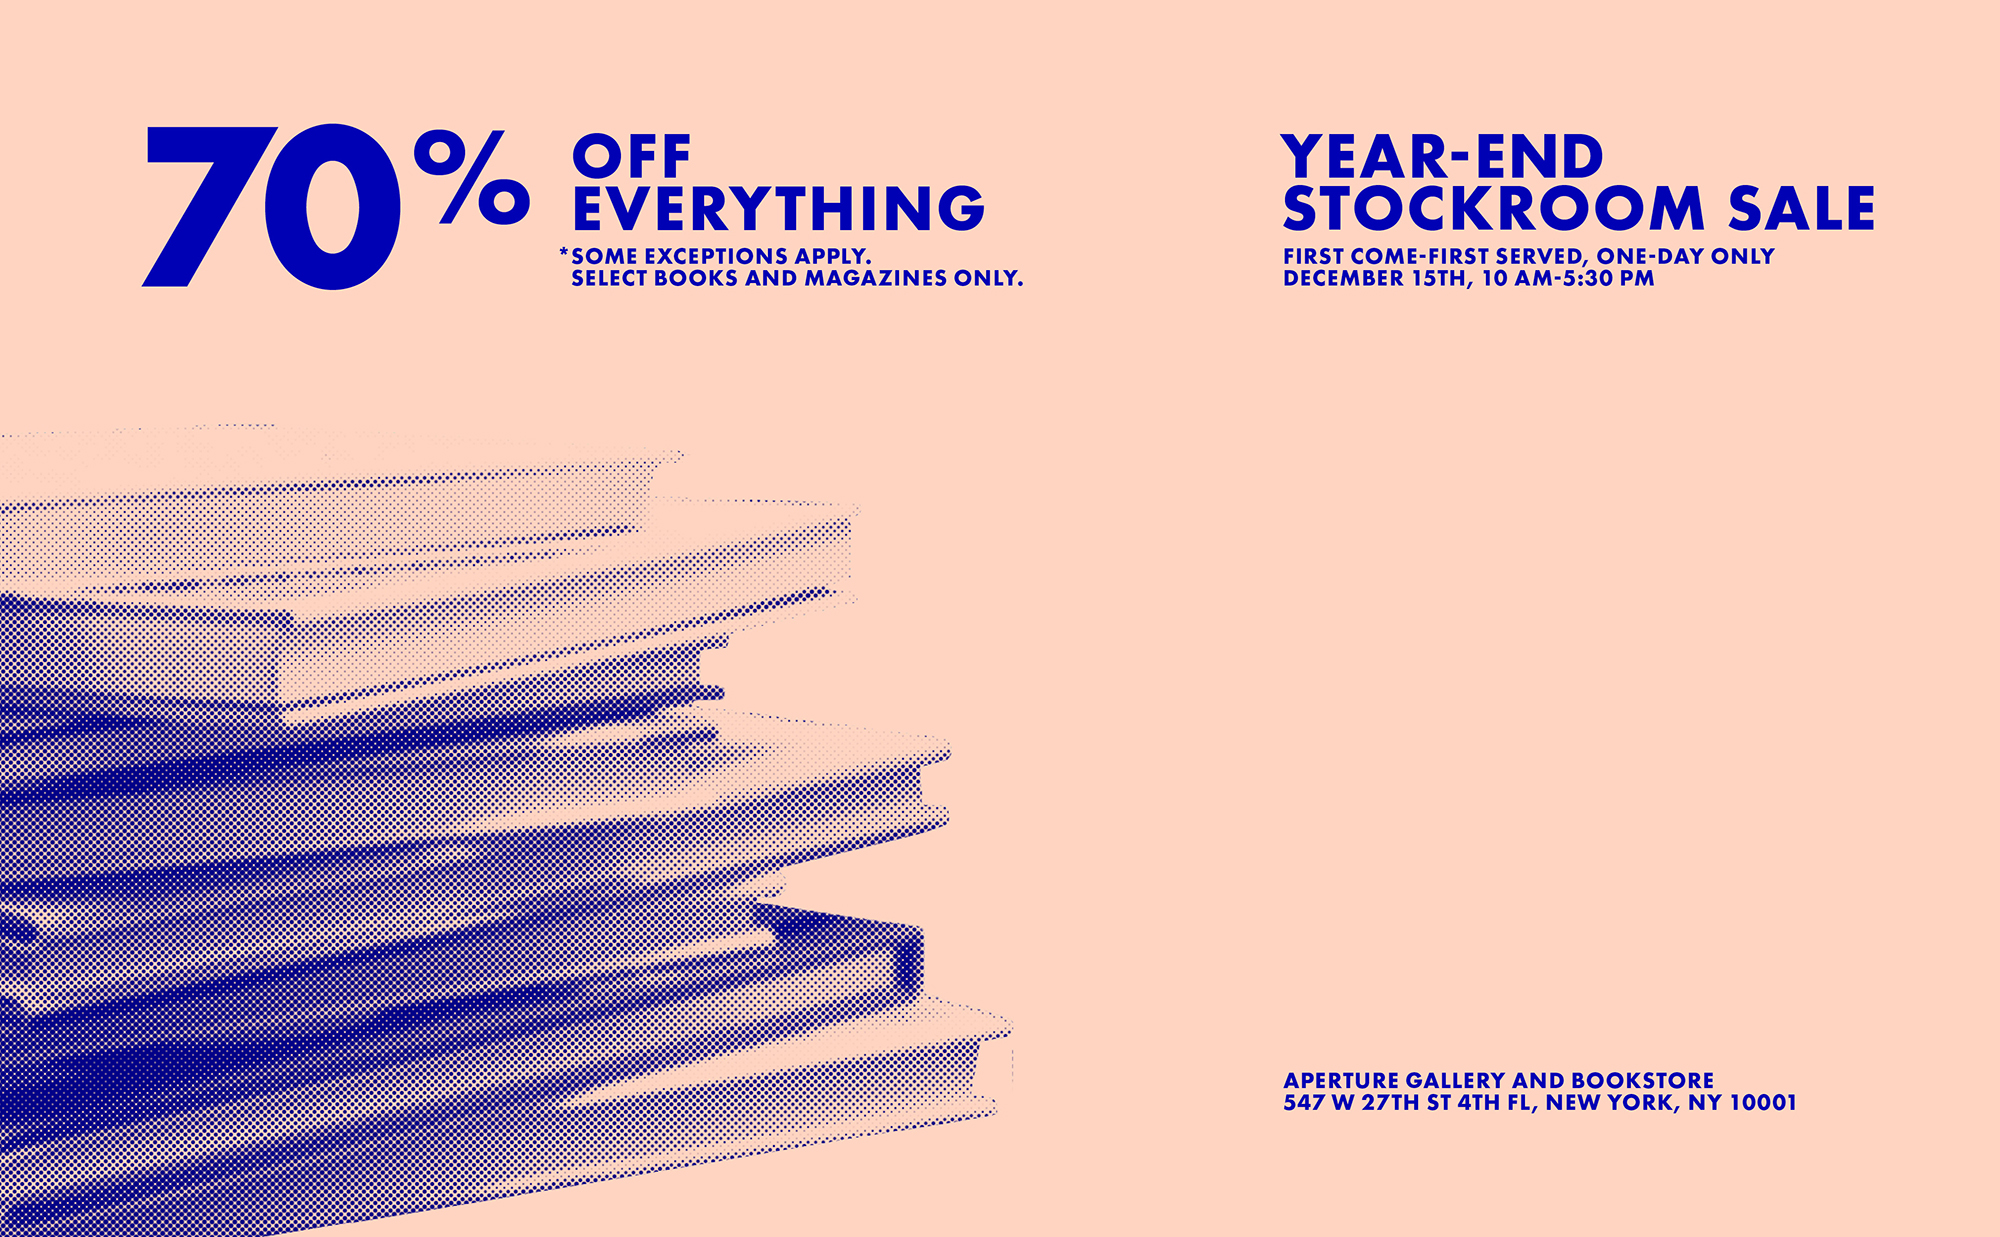 Stockroom Sale — 70% Off Everything